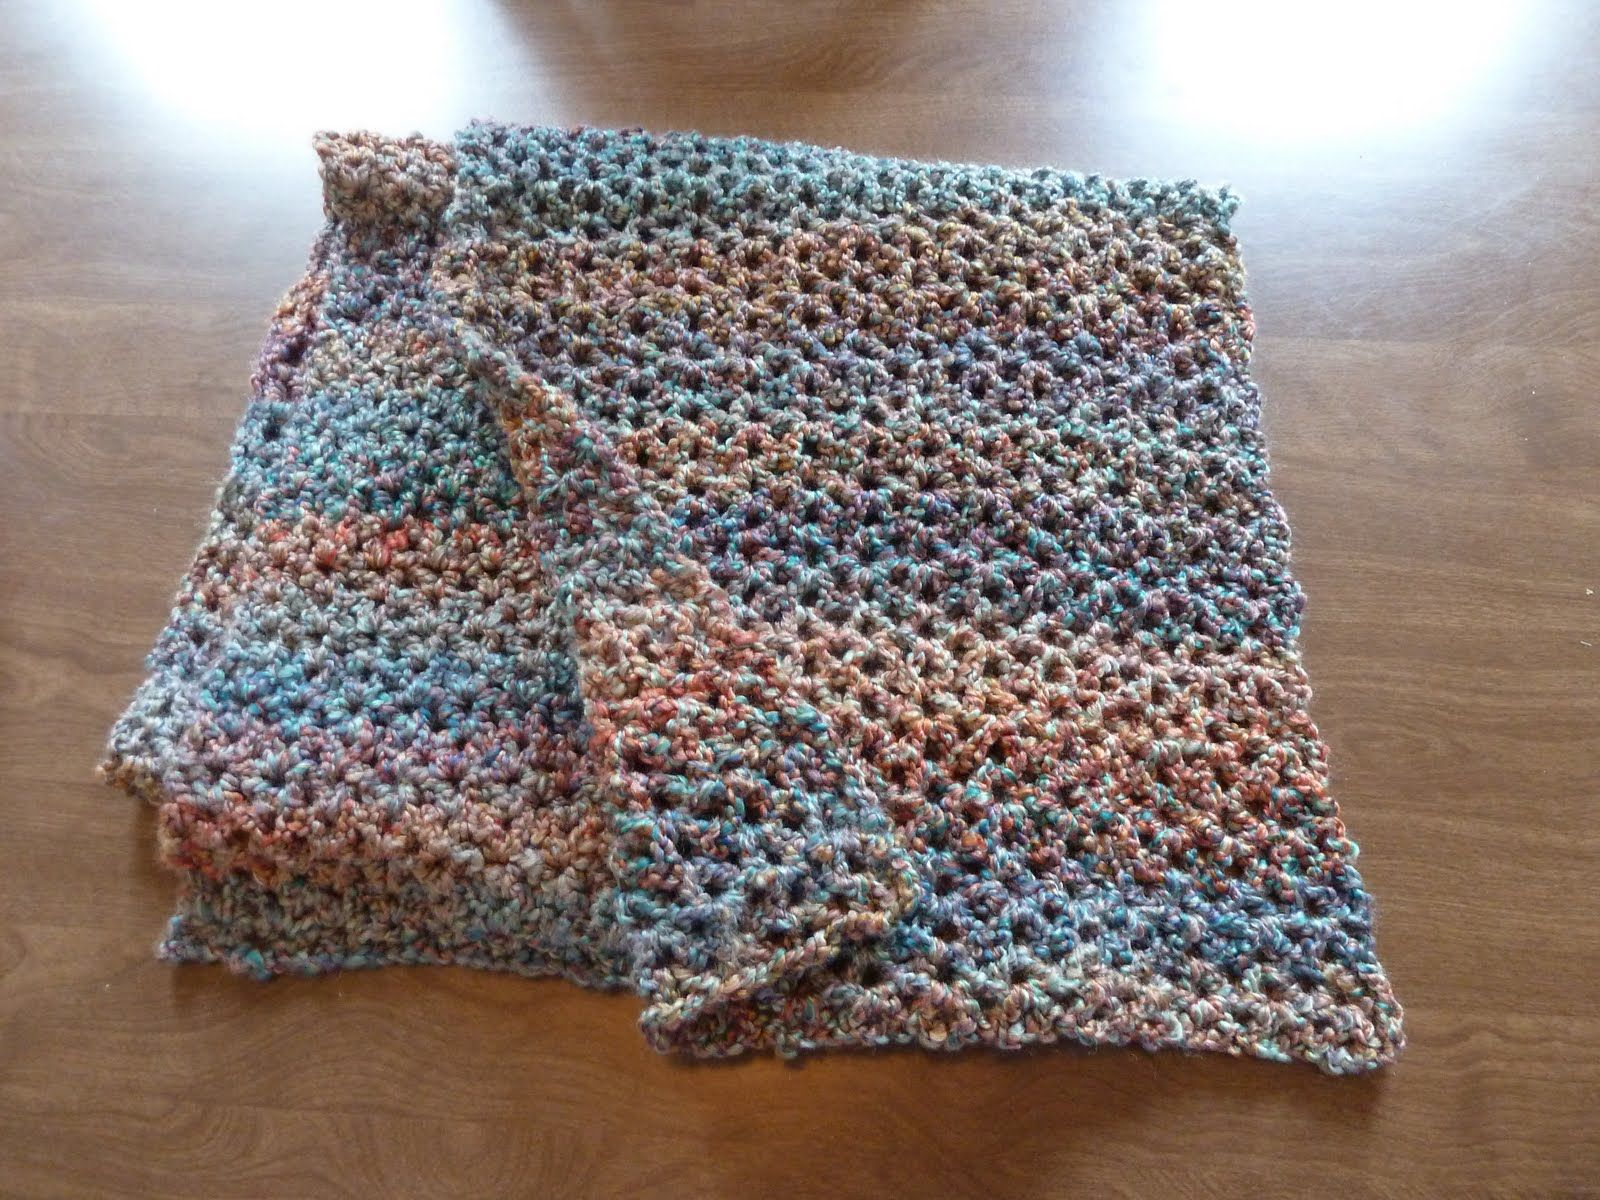 Quick Crochet Prayer Shawl This Is A Quick And Simple Prayer Shawl